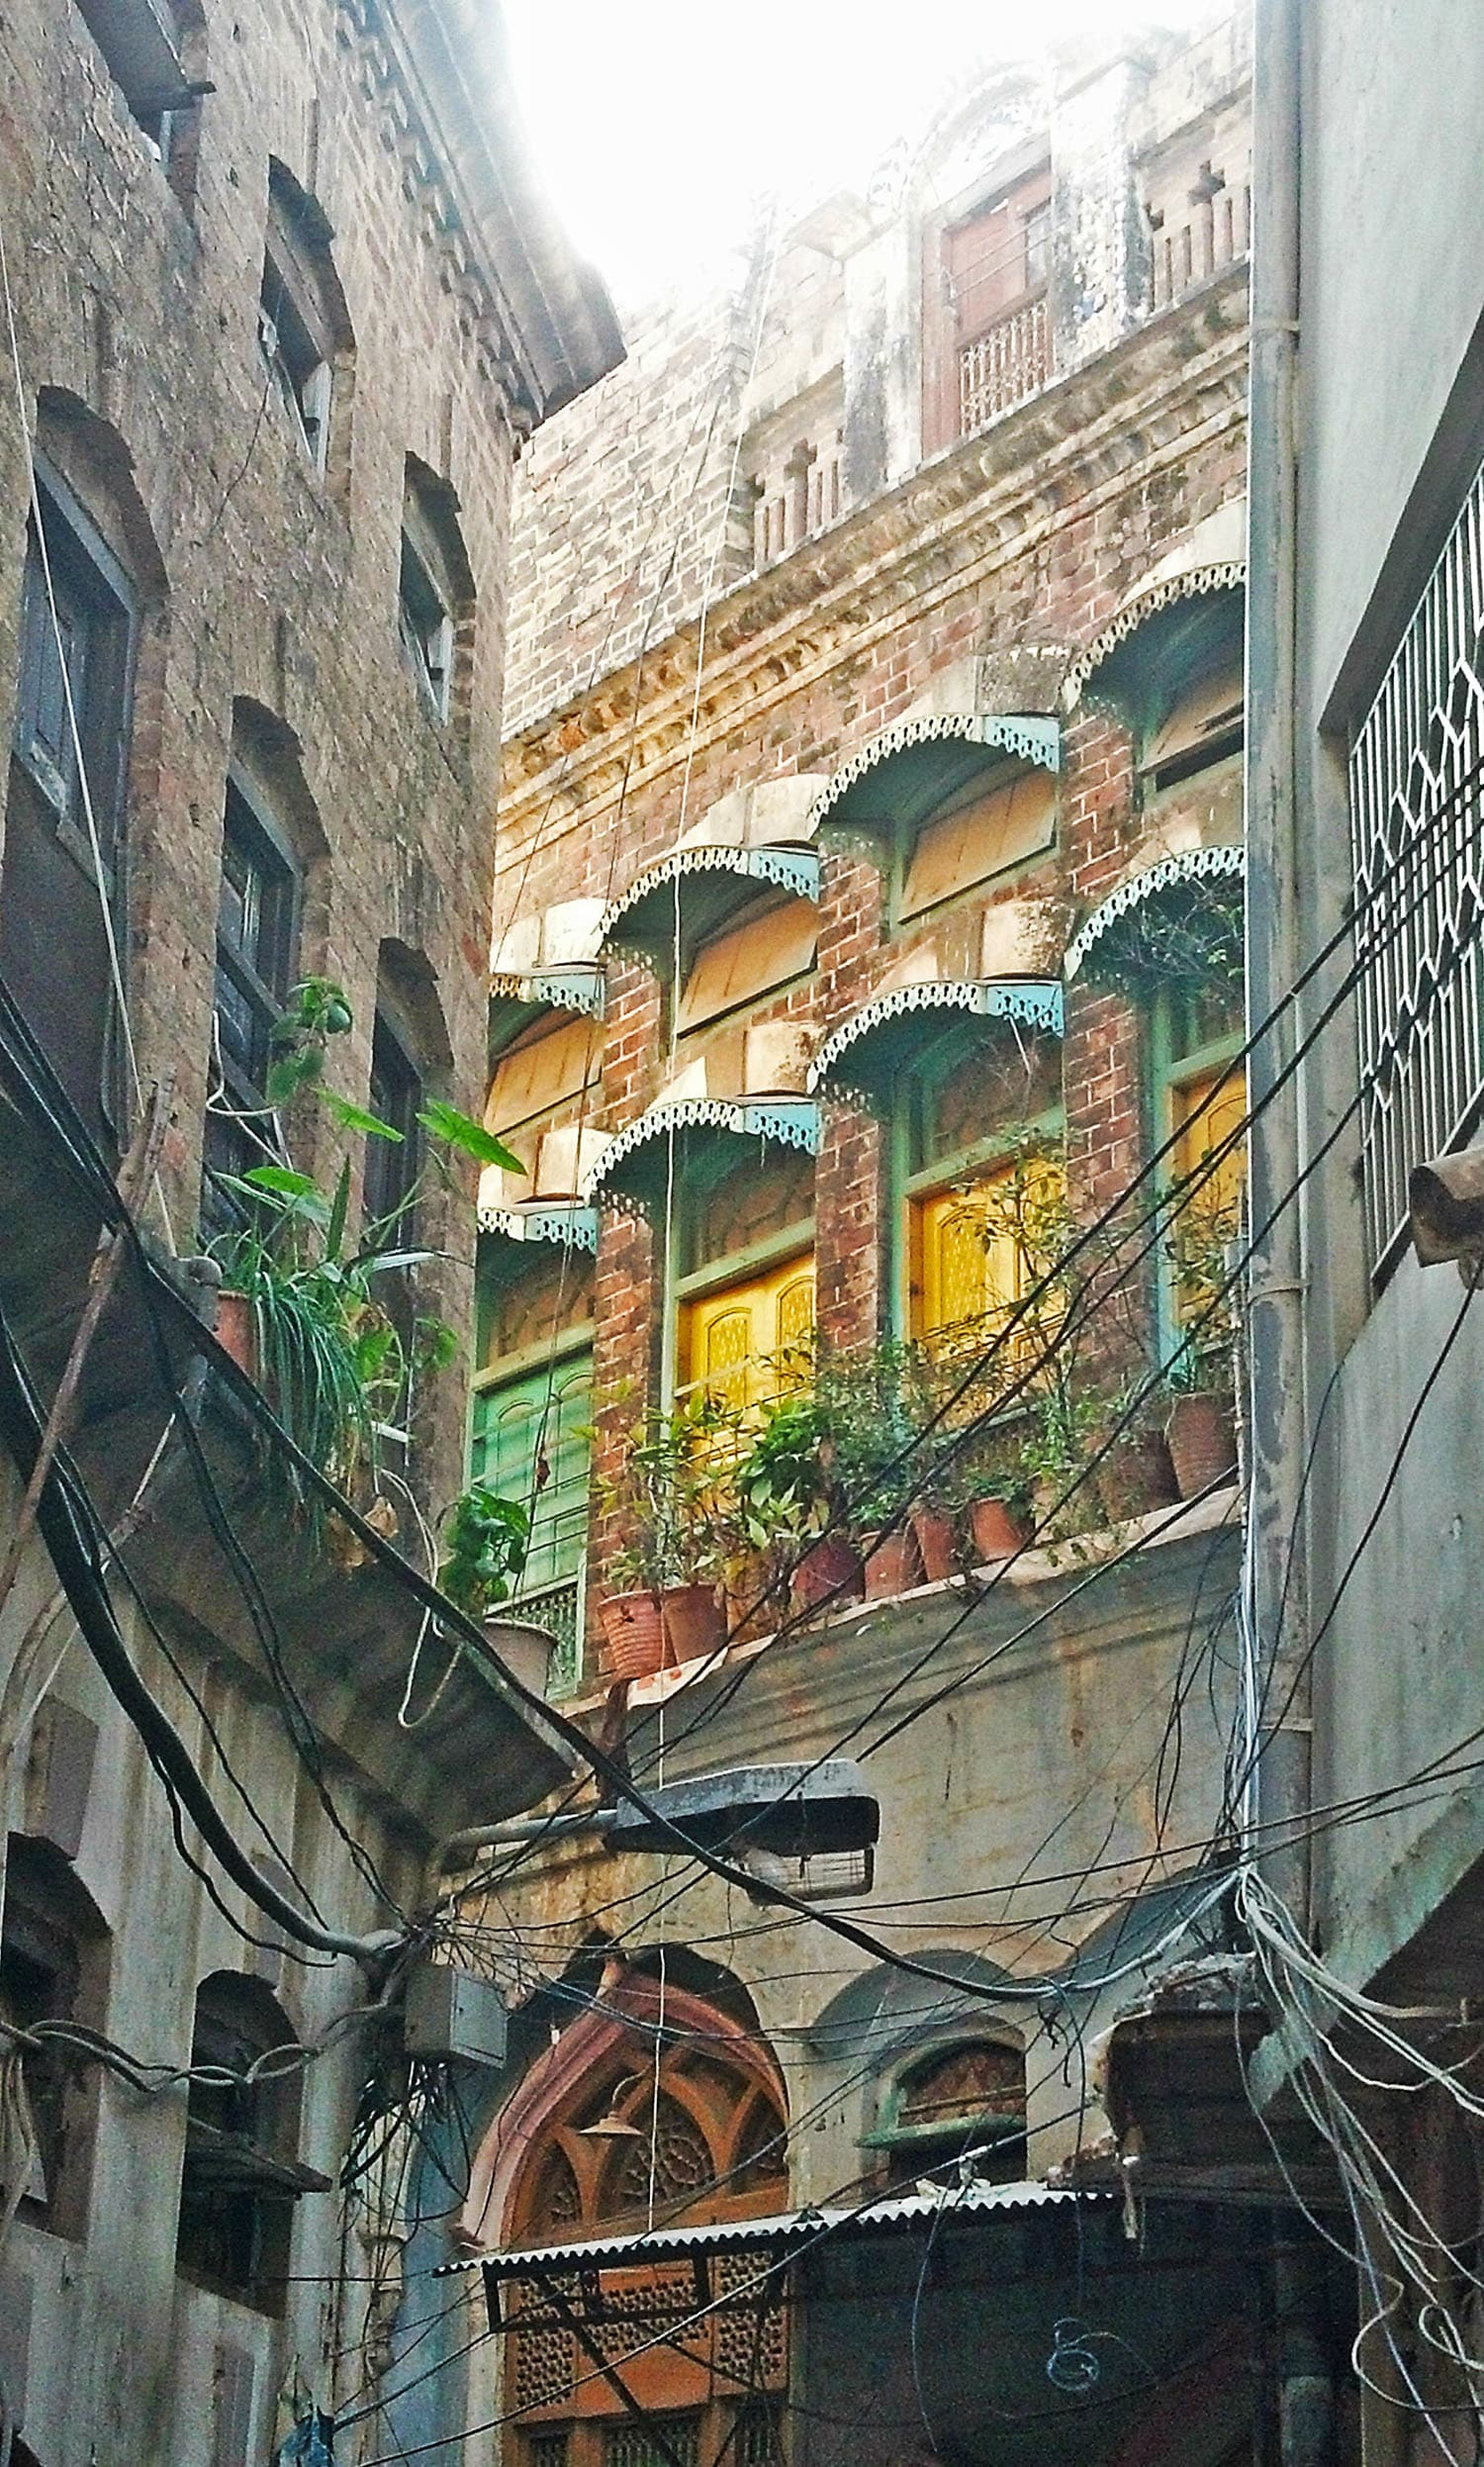 Walking through the streets near Shah Chan Charagh, which is attached to the Sarafa Bazaar.